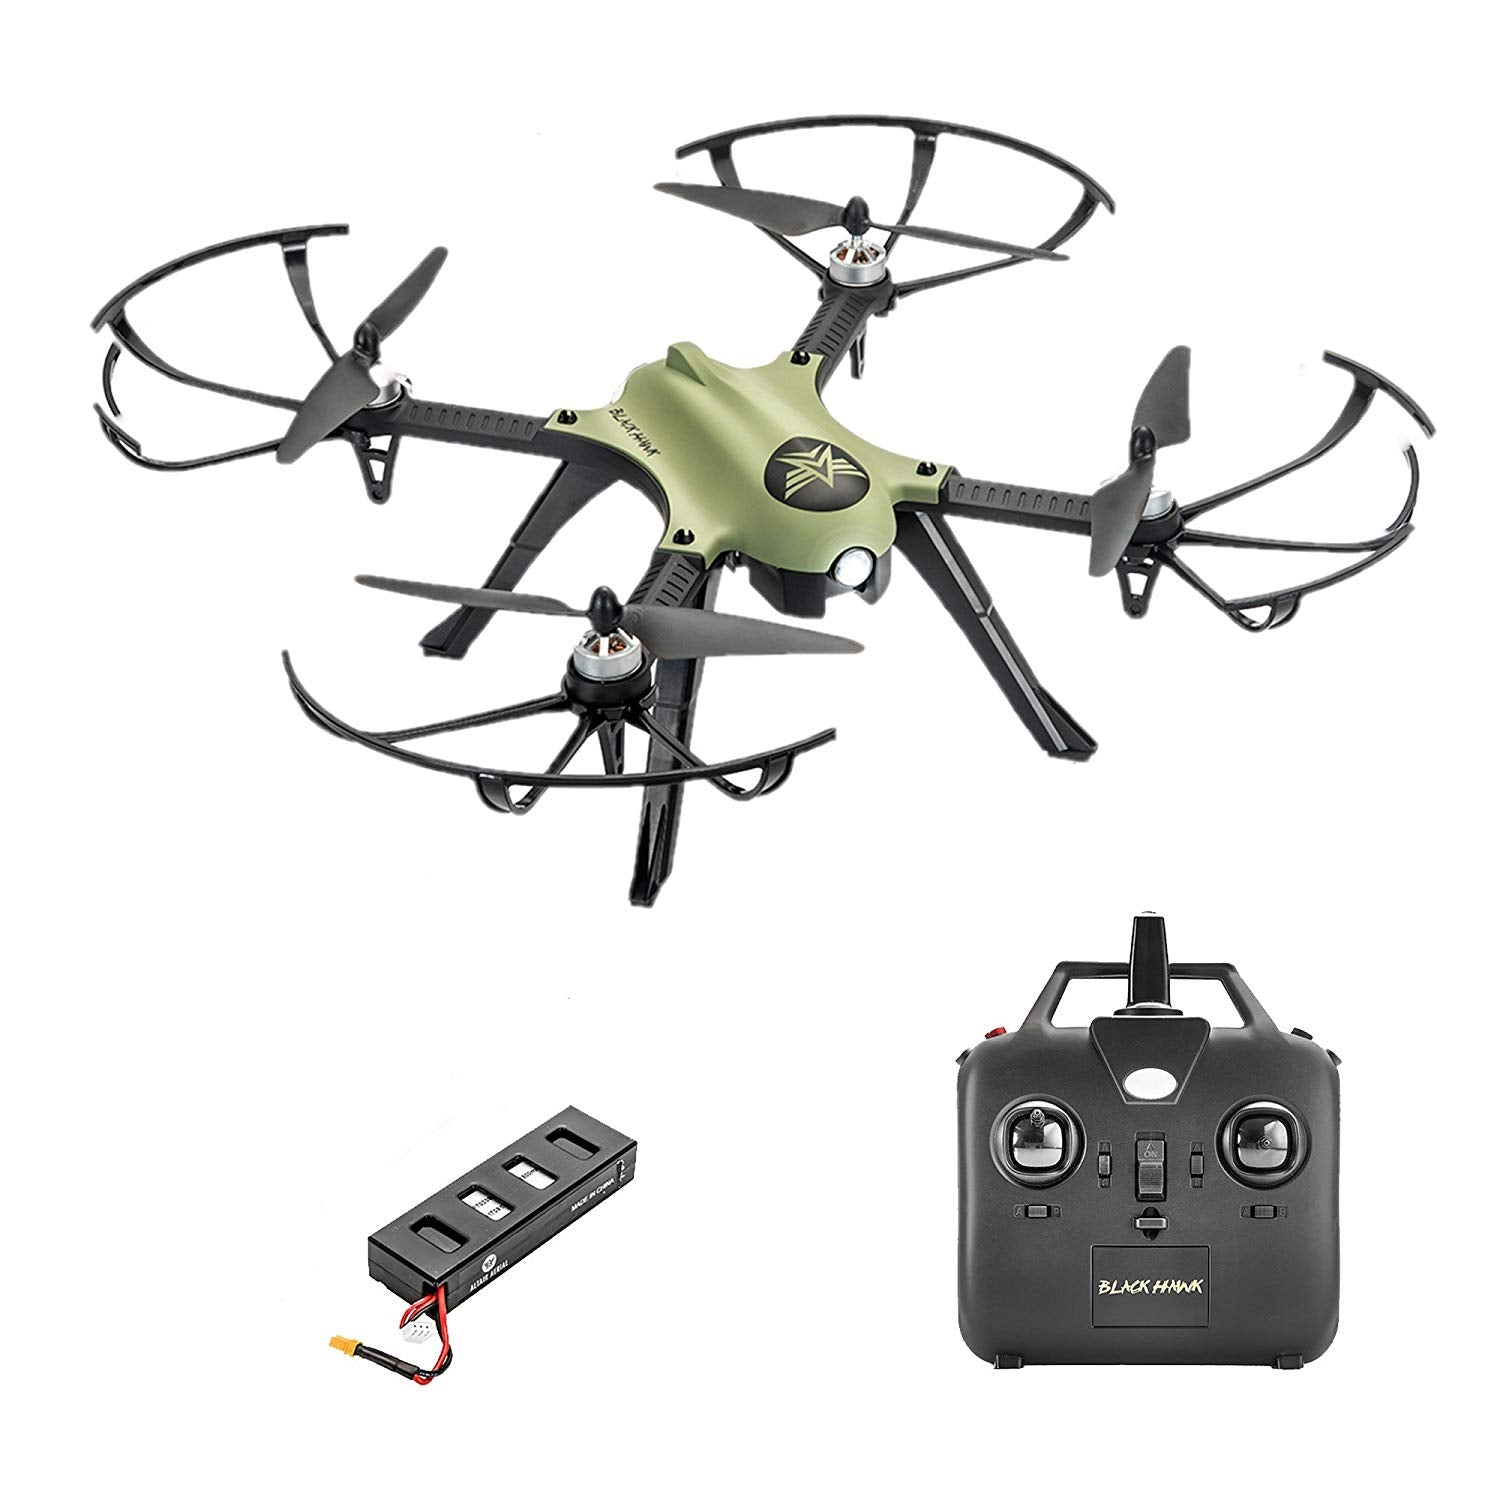 Altair Blackhawk | GoPro Compatible | We Ship International | Fast & Free  Shipping to USA!